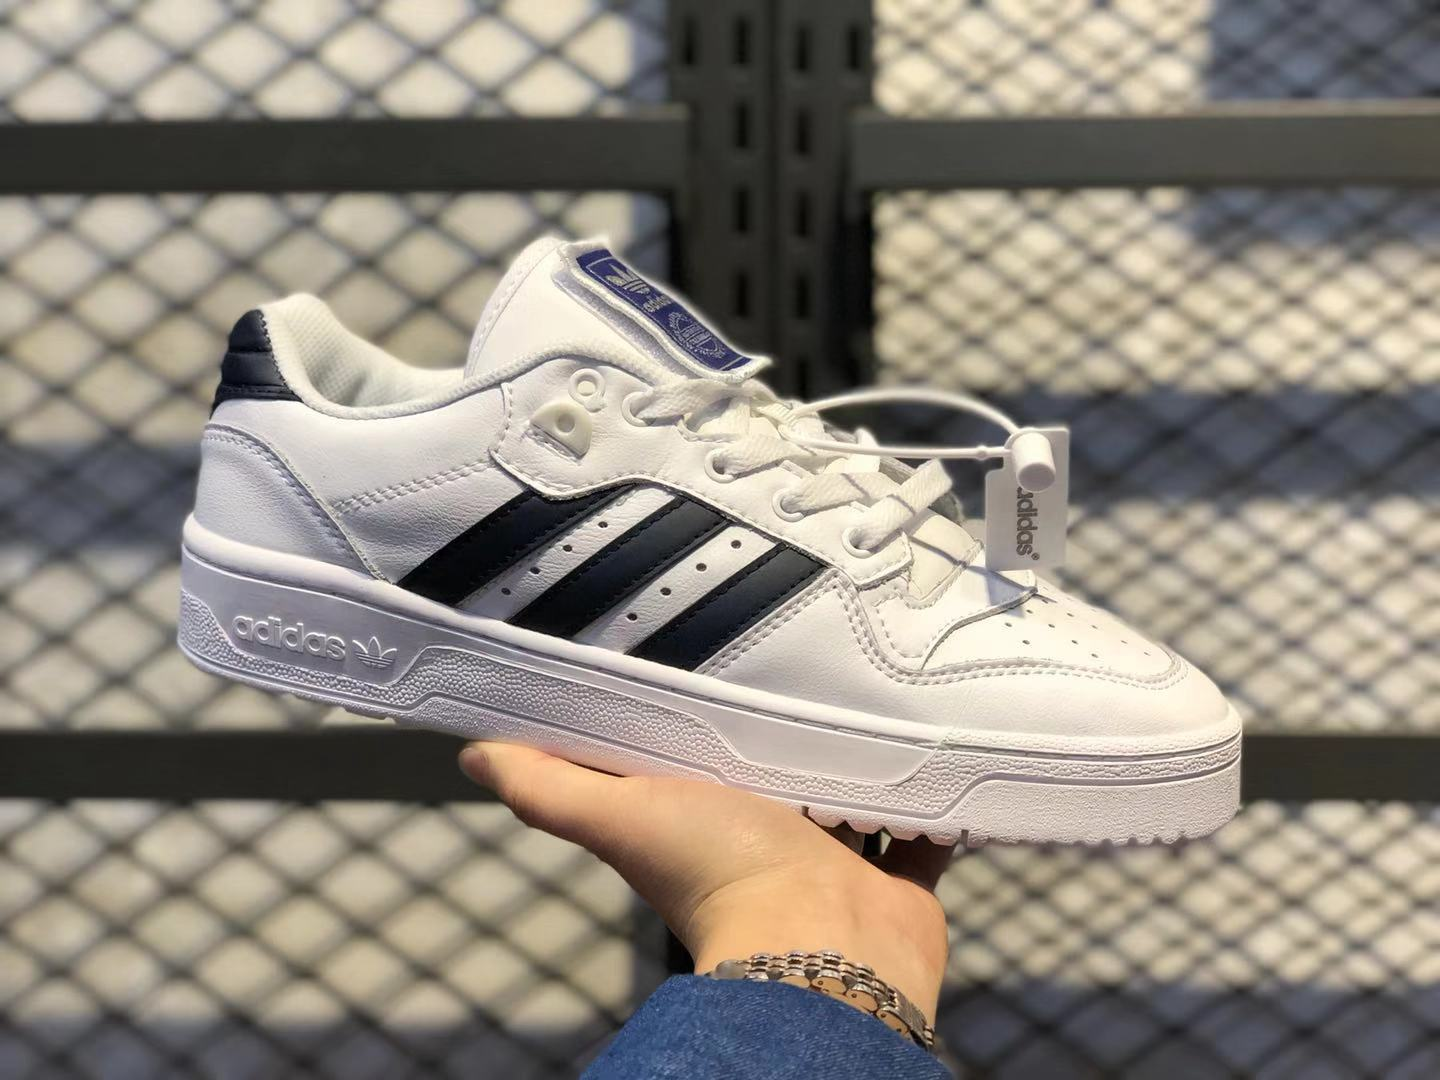 2020 Adidas Rivalry Low Cloud White/Dark Blue FV3578 Casual Shoes To Buy